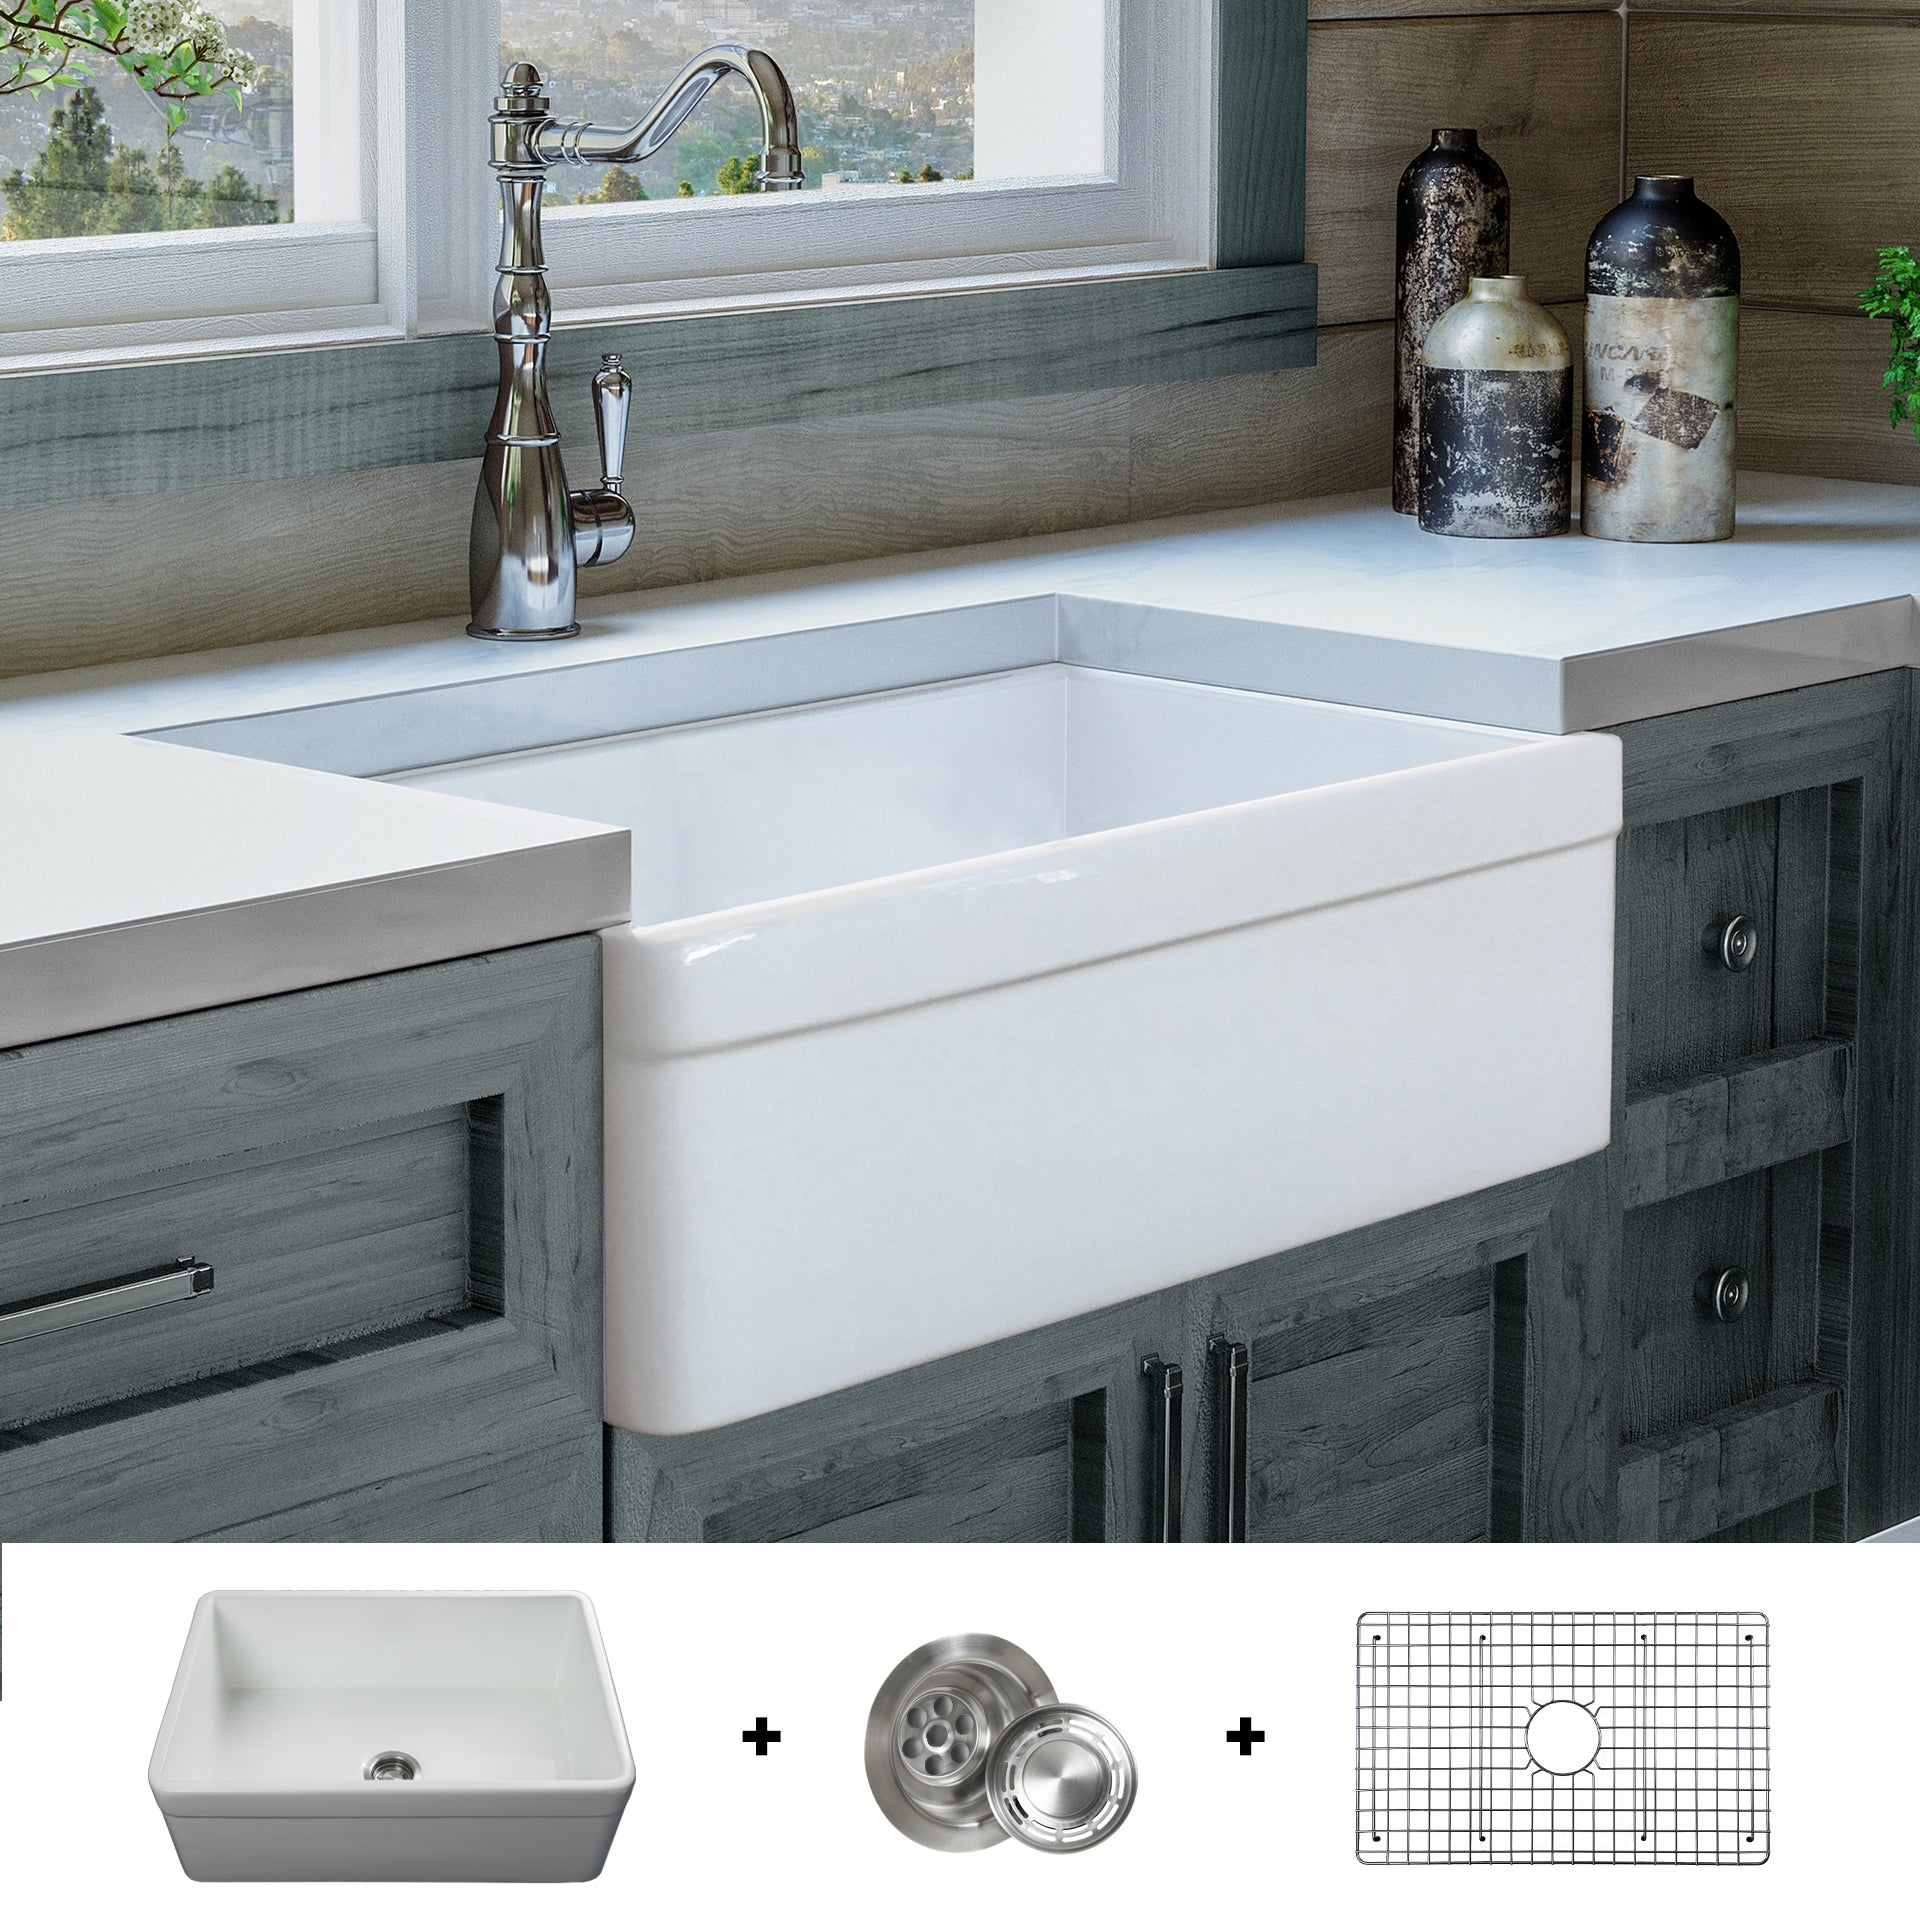 FSW1004 Luxury 30 Inch Pure Fireclay Modern Farmhouse Sink in White, Belted  Apron, FREE GRID